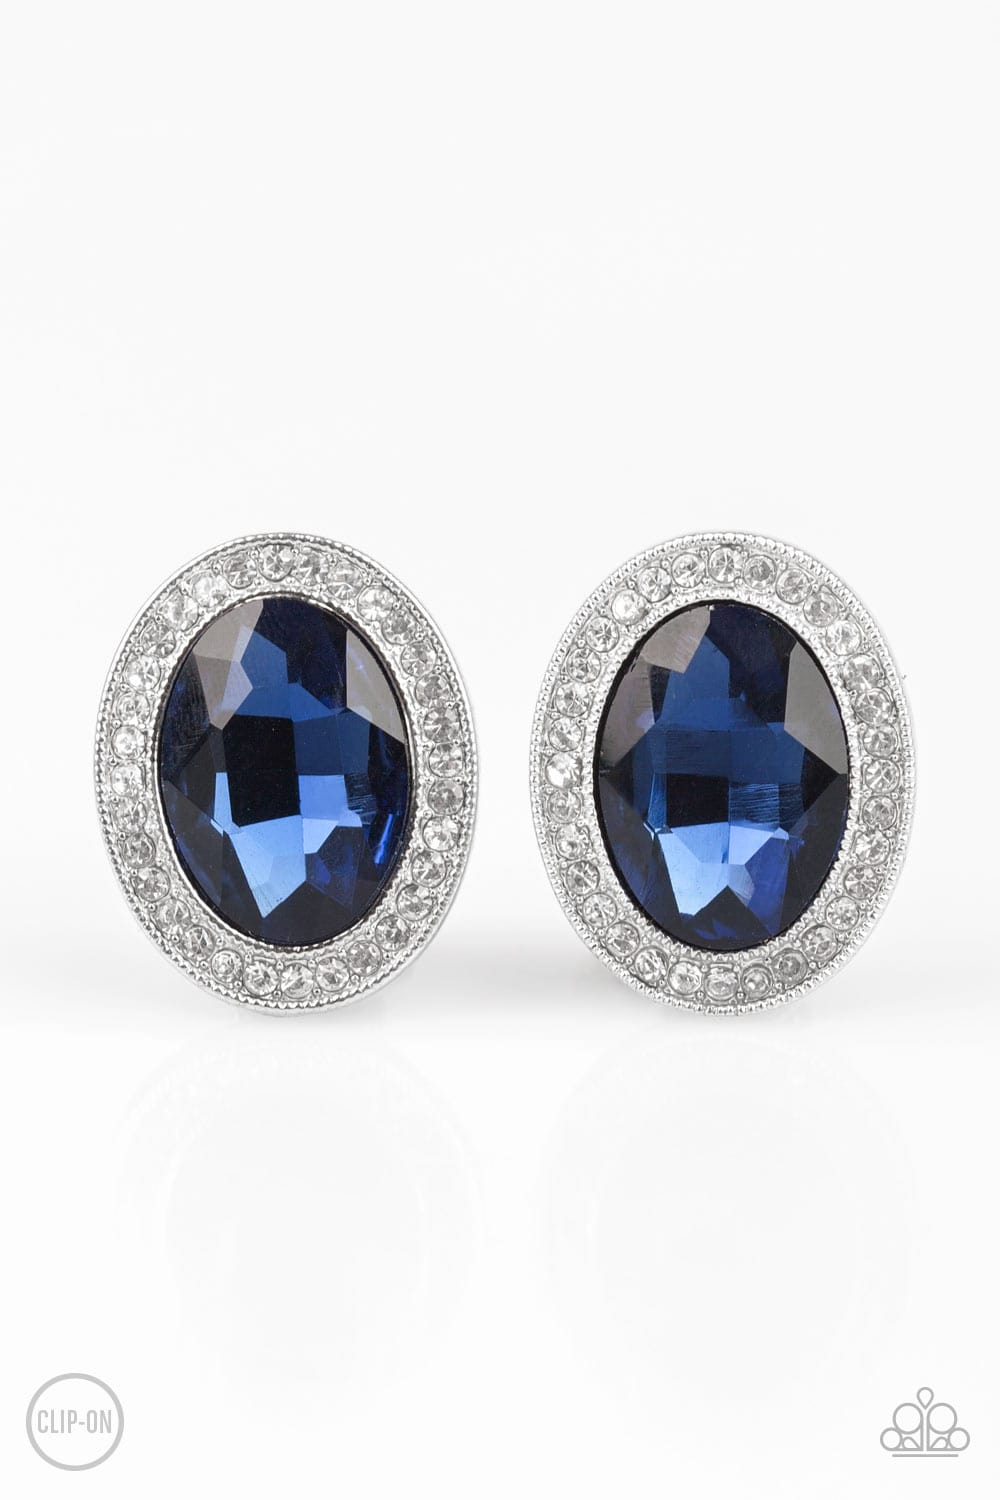 Paparazzi: Only FAME In Town - Blue Clip-On Earrings - Jewels N' Thingz Boutique